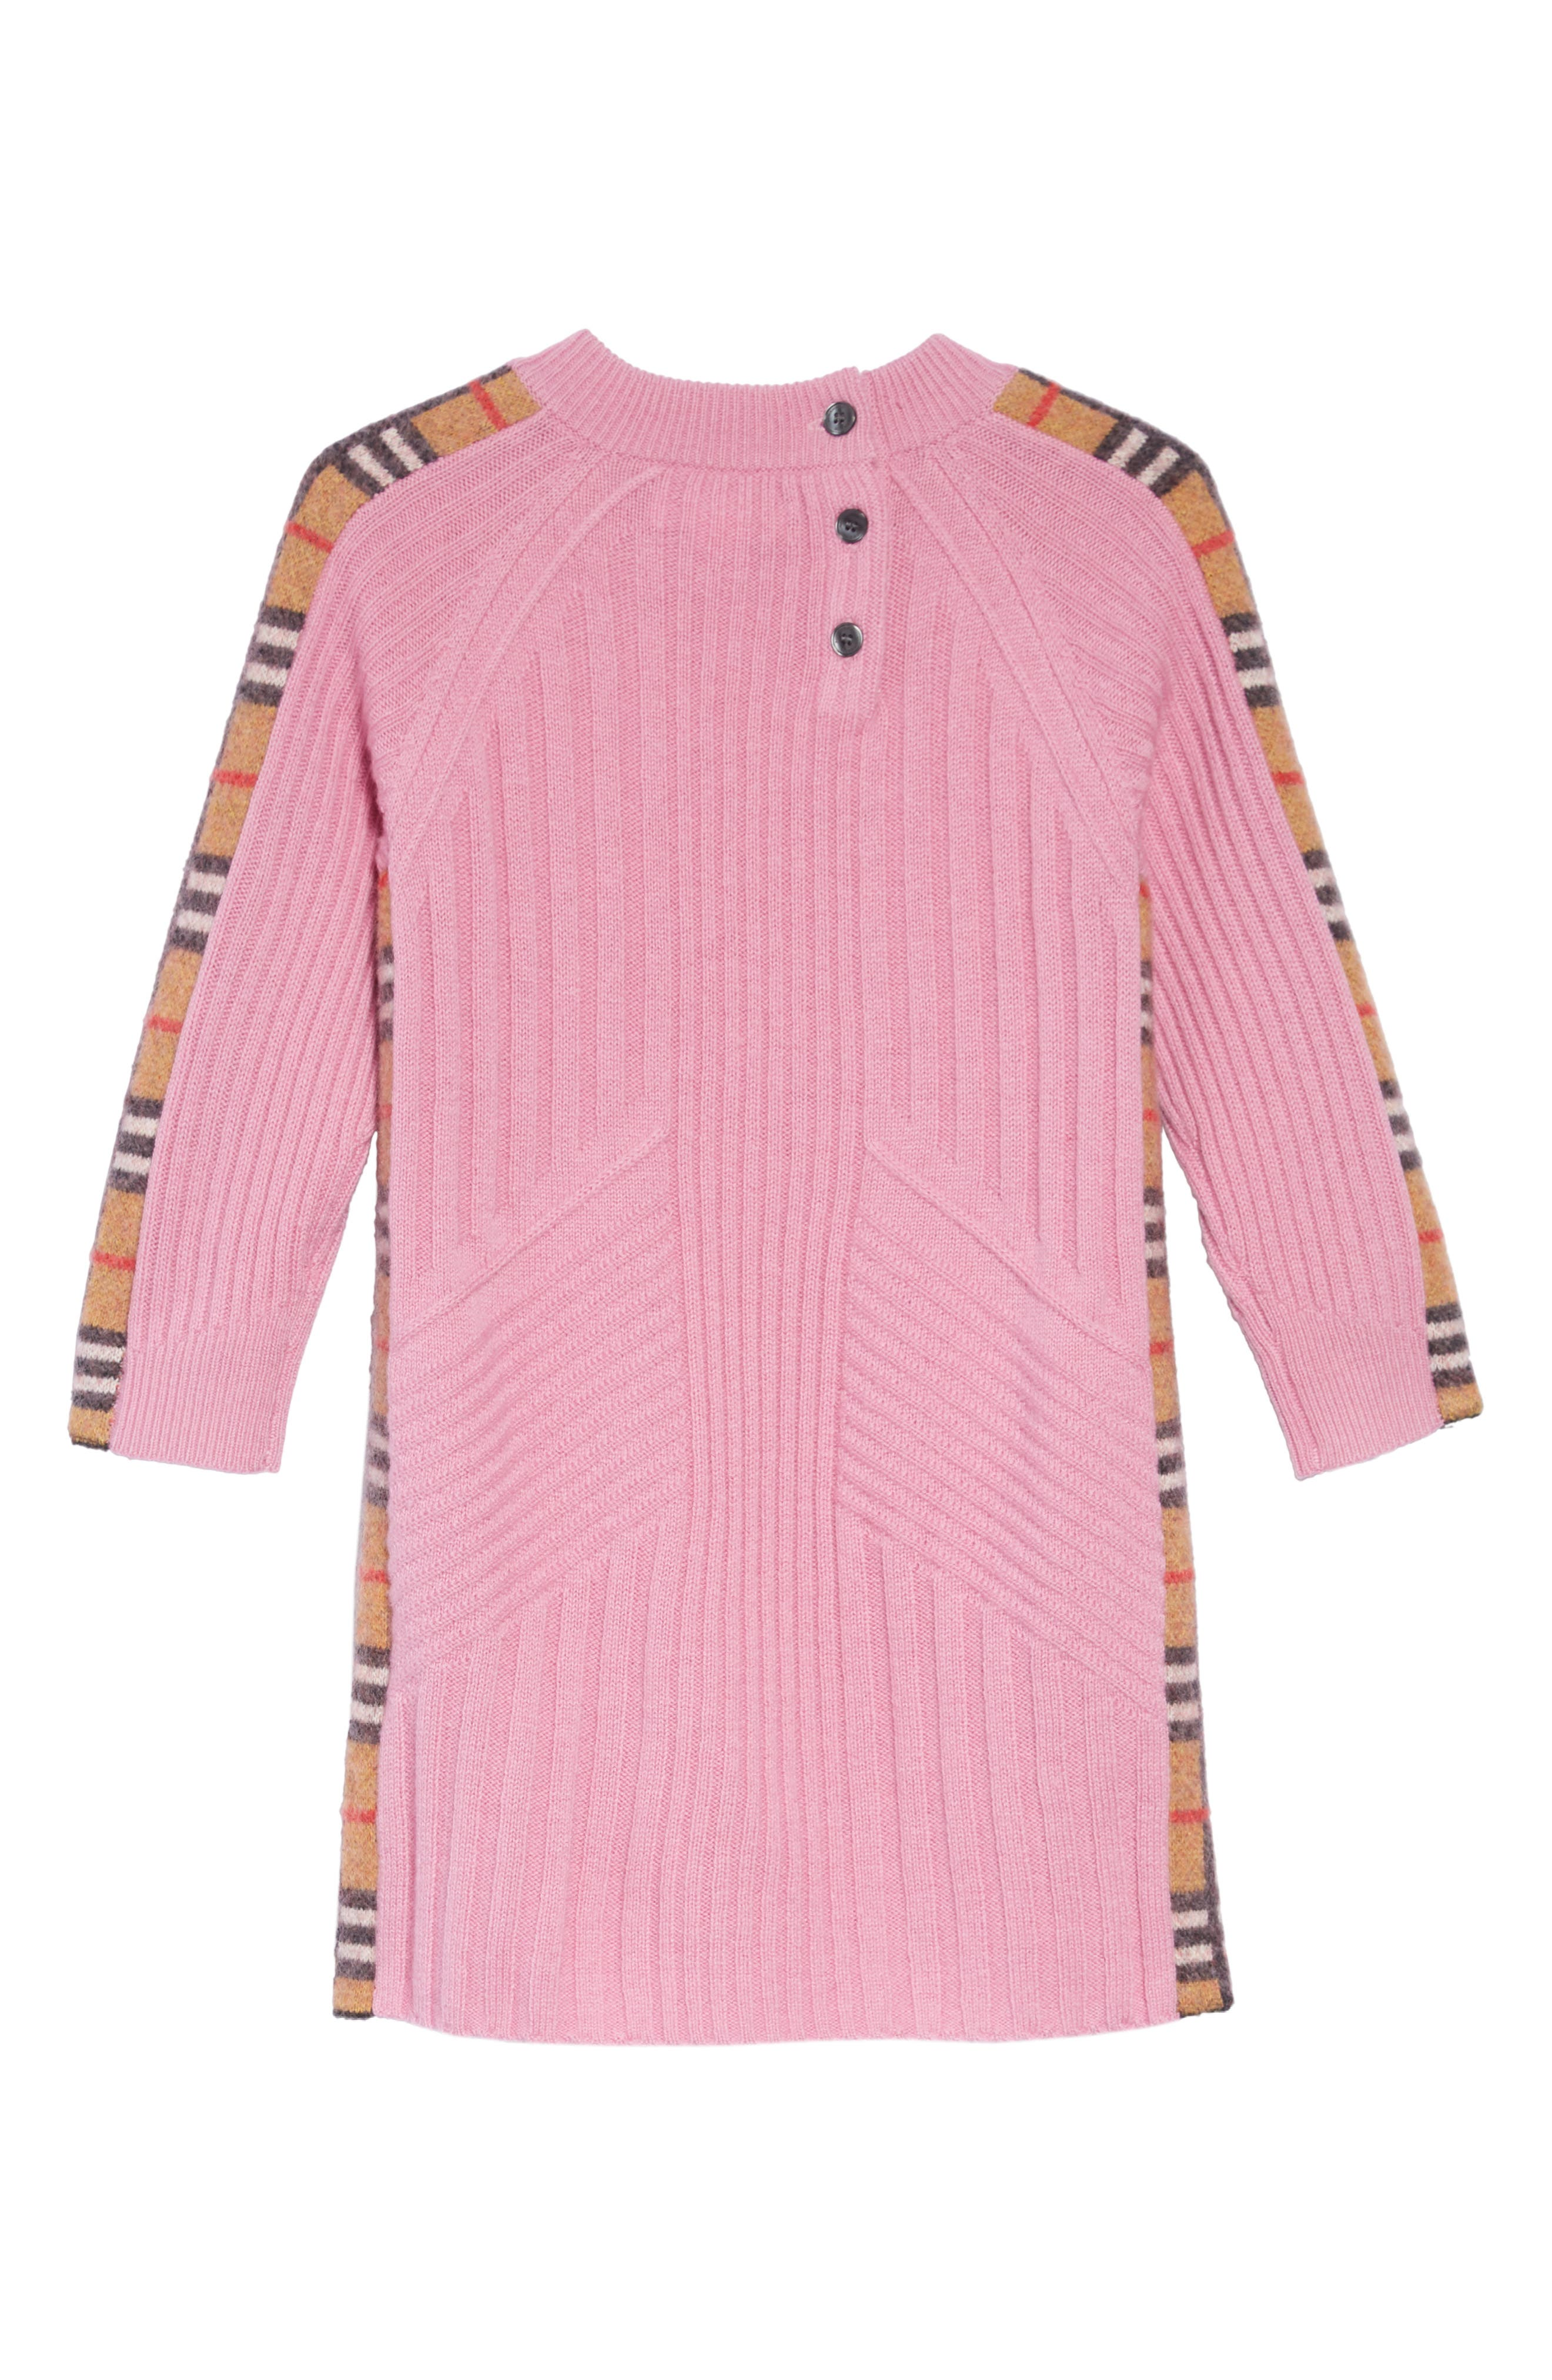 Kids Cathina Check Detail Wool & Cashmere Sweater Dress,                             Alternate thumbnail 2, color,                             ROSE PINK